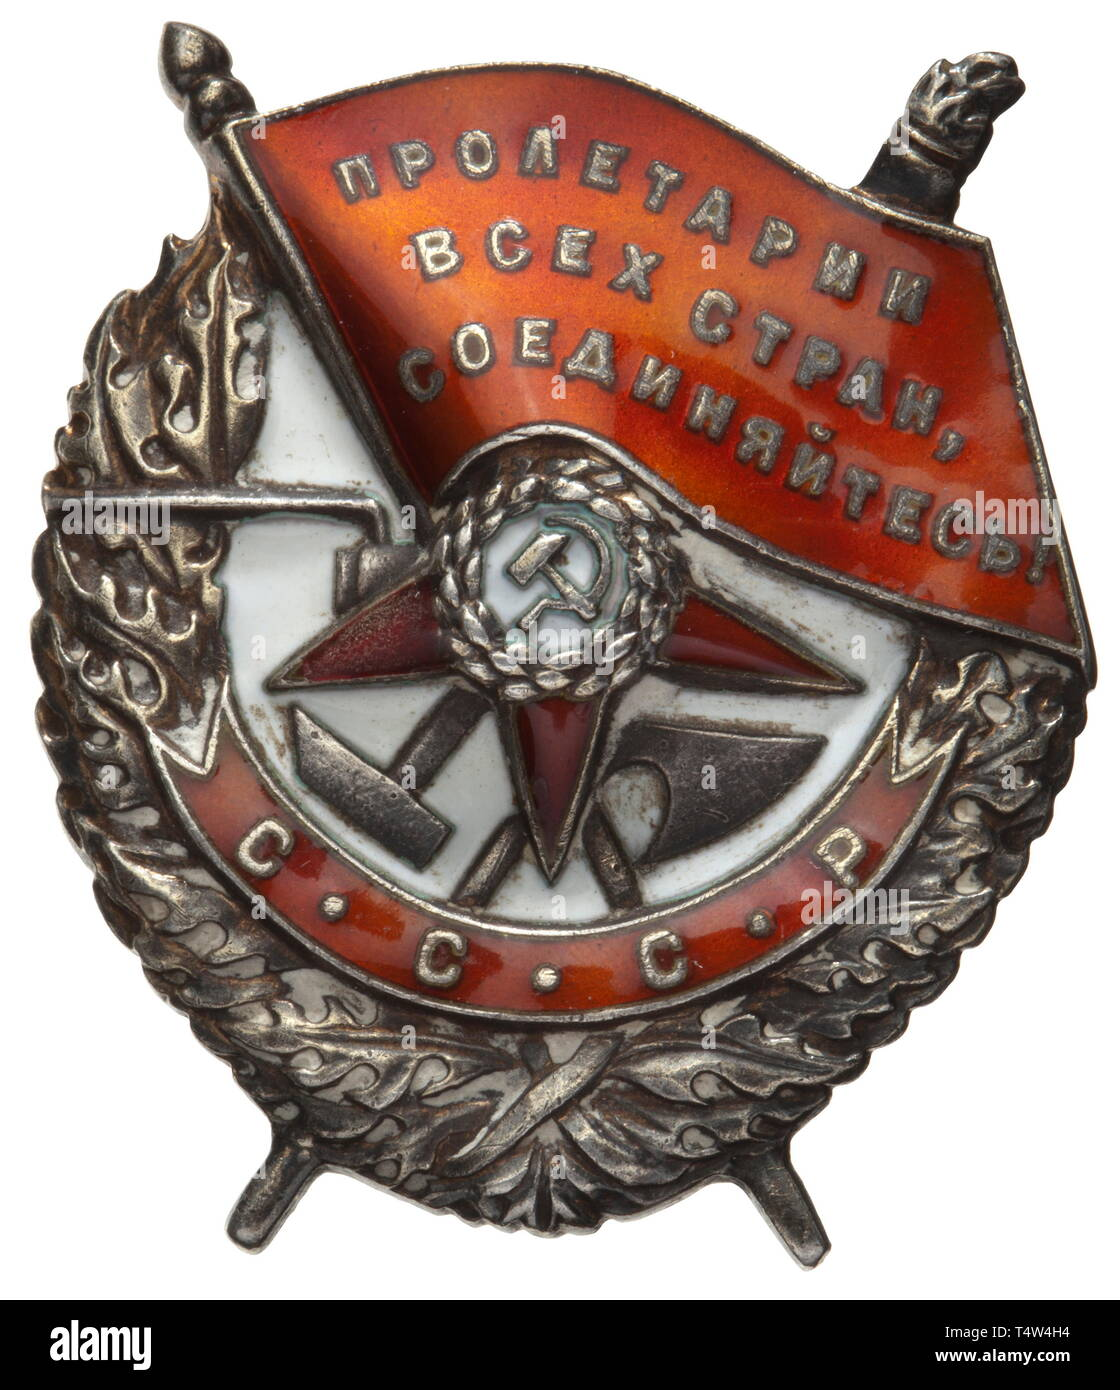 An Order of the Red Banner. Soviet Union until 1943. Silver, enamelled areas, the gilding heavily faded. Reverse award number '41303' as well as a struck maker's stamp. Enamel on the left arm of the star minimally restored. On a threaded disc attachment. historic, historical, medal, decoration, medals, decorations, badge of honour, badge of honor, badges of honour, badges of honor, 20th century, Additional-Rights-Clearance-Info-Not-Available - Stock Image